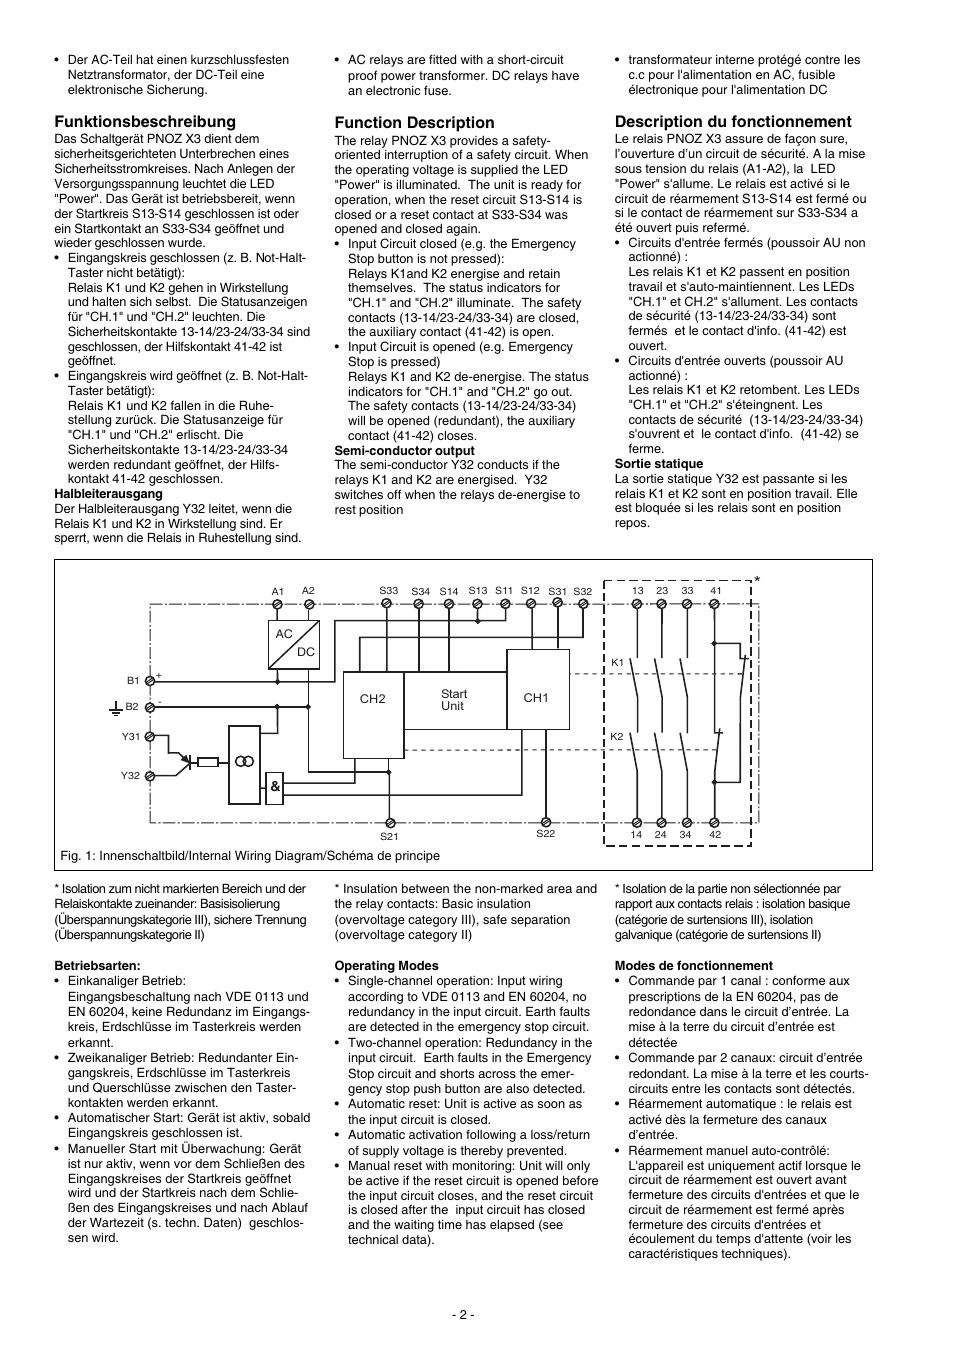 Pilz Pnoz X3 Schematic Trusted Wiring Diagrams Contactor Diagram Additionally Safety Relay Description Du Fonctionnement Funktionsbeschreibung Function